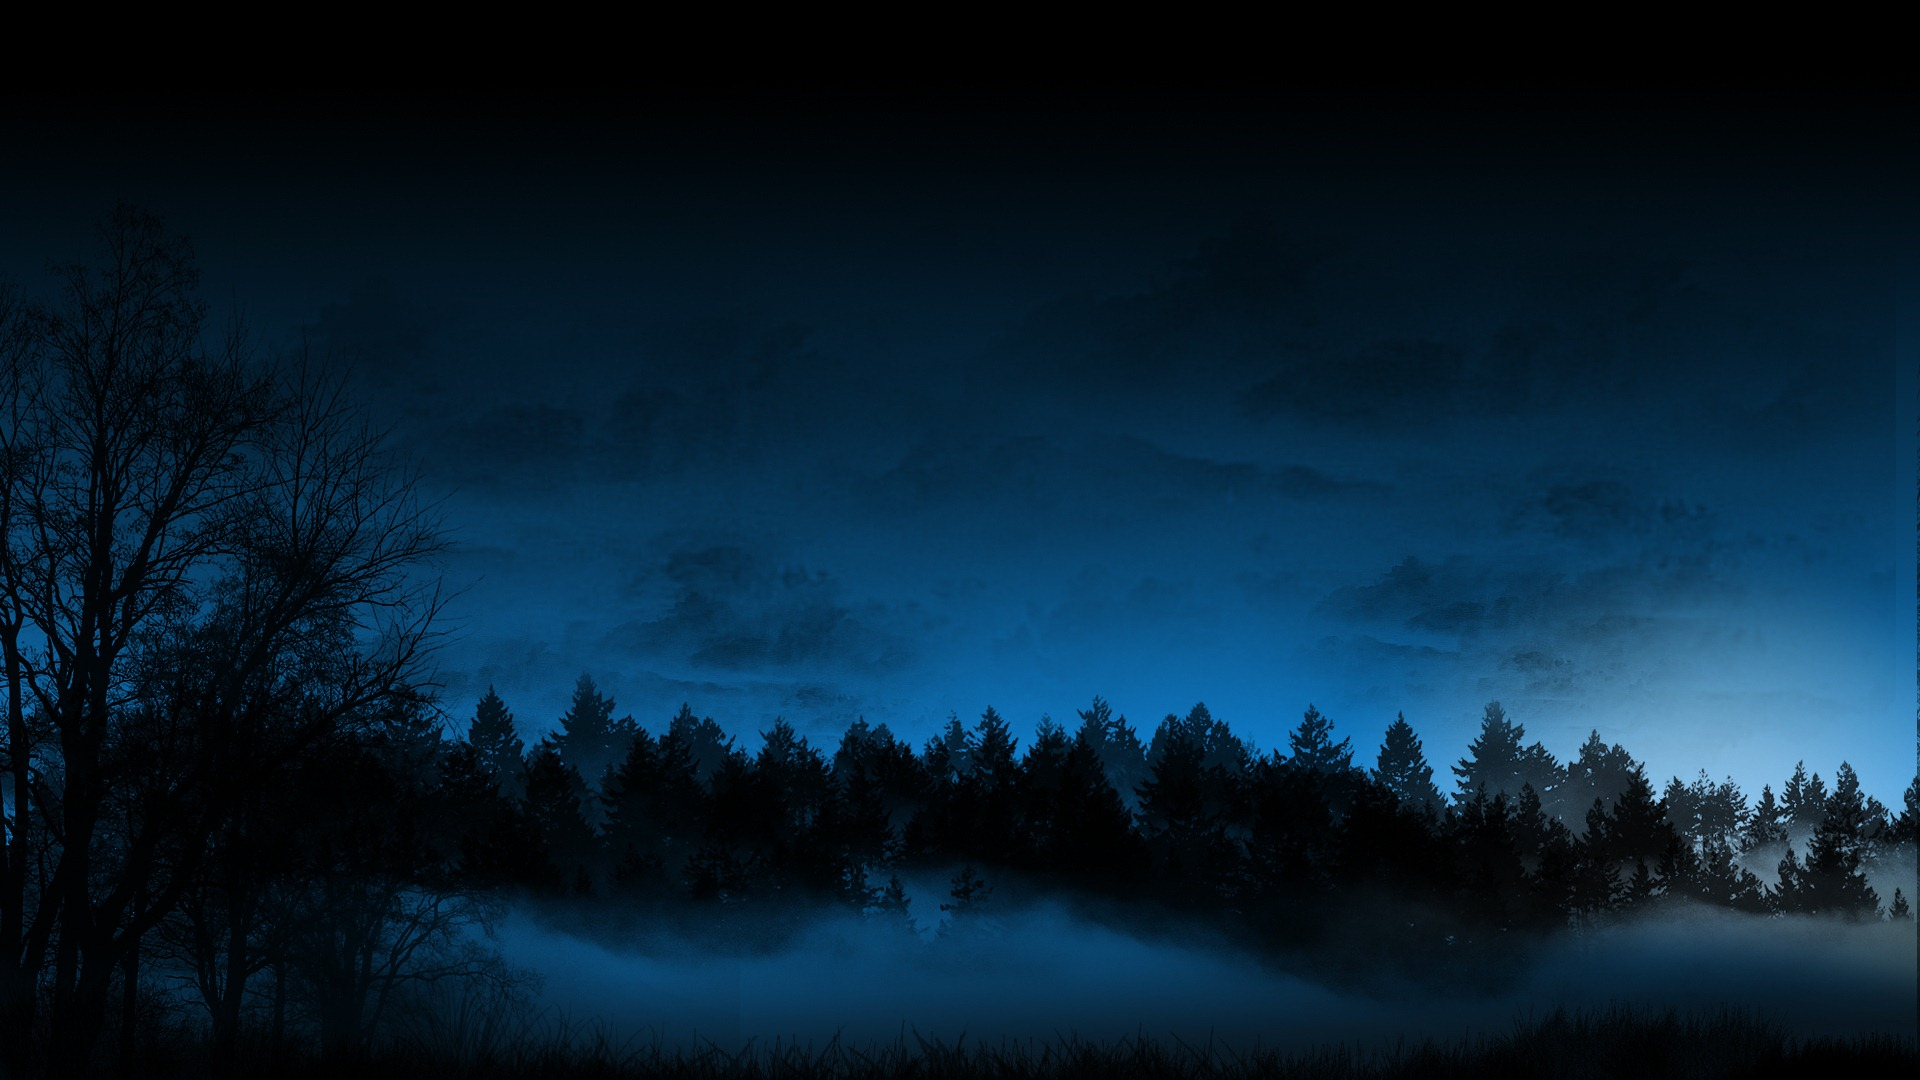 Trees Forest Night Fog Mist Blue CG sky wallpaper 1920x1080 46429 1920x1080